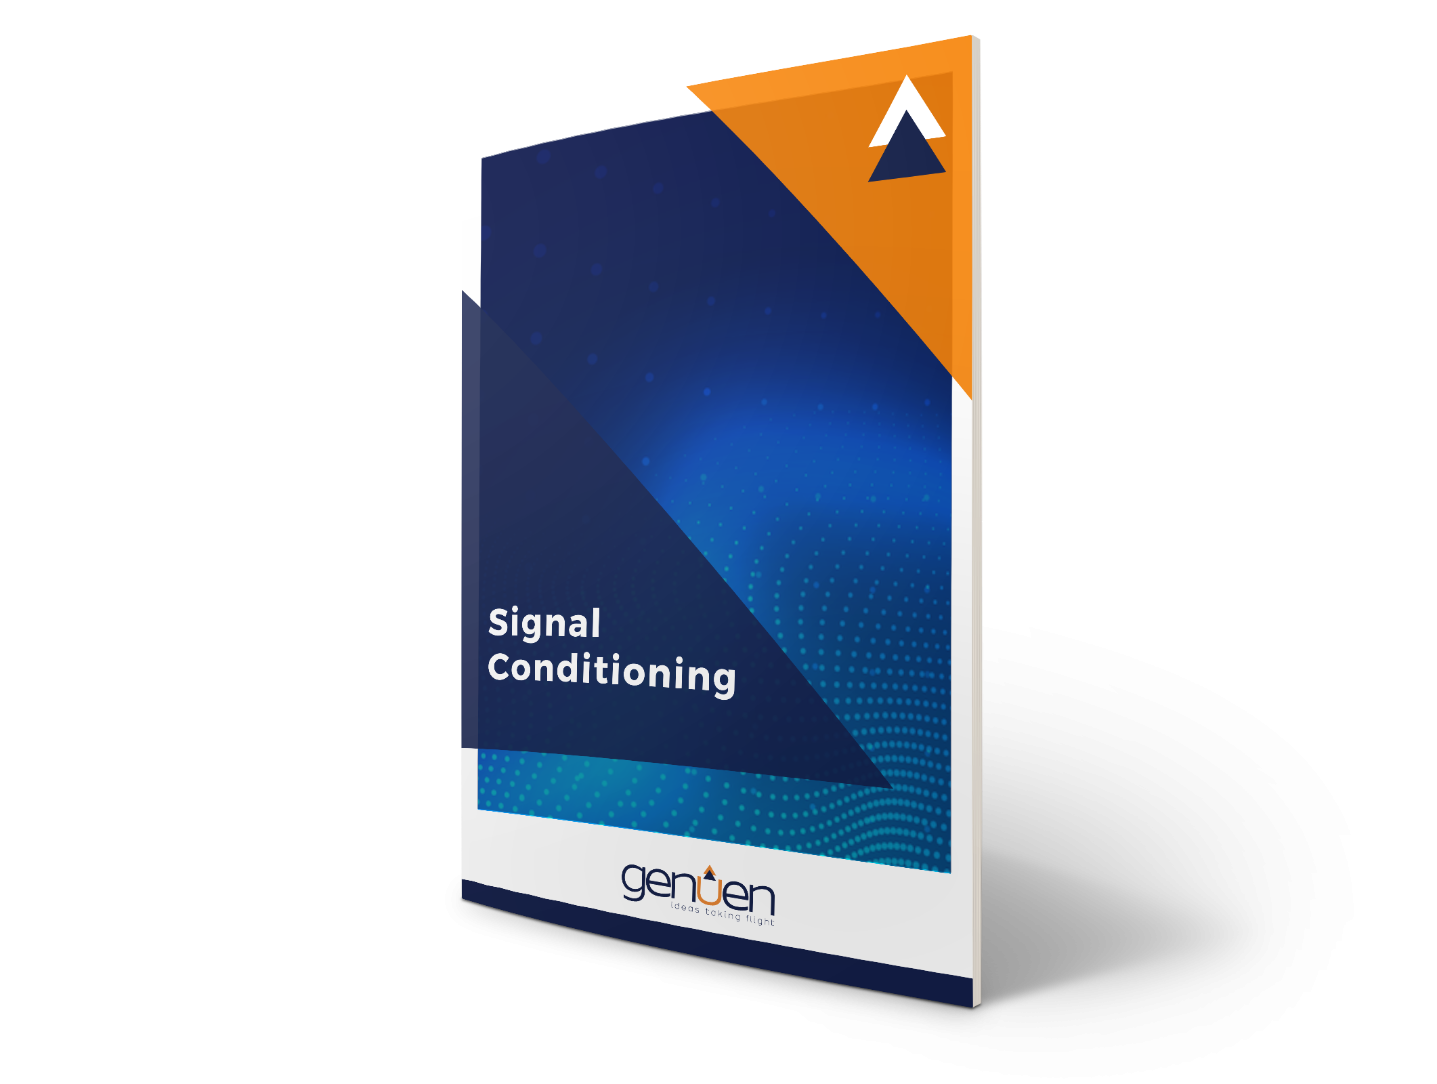 3D Signal Conditioning